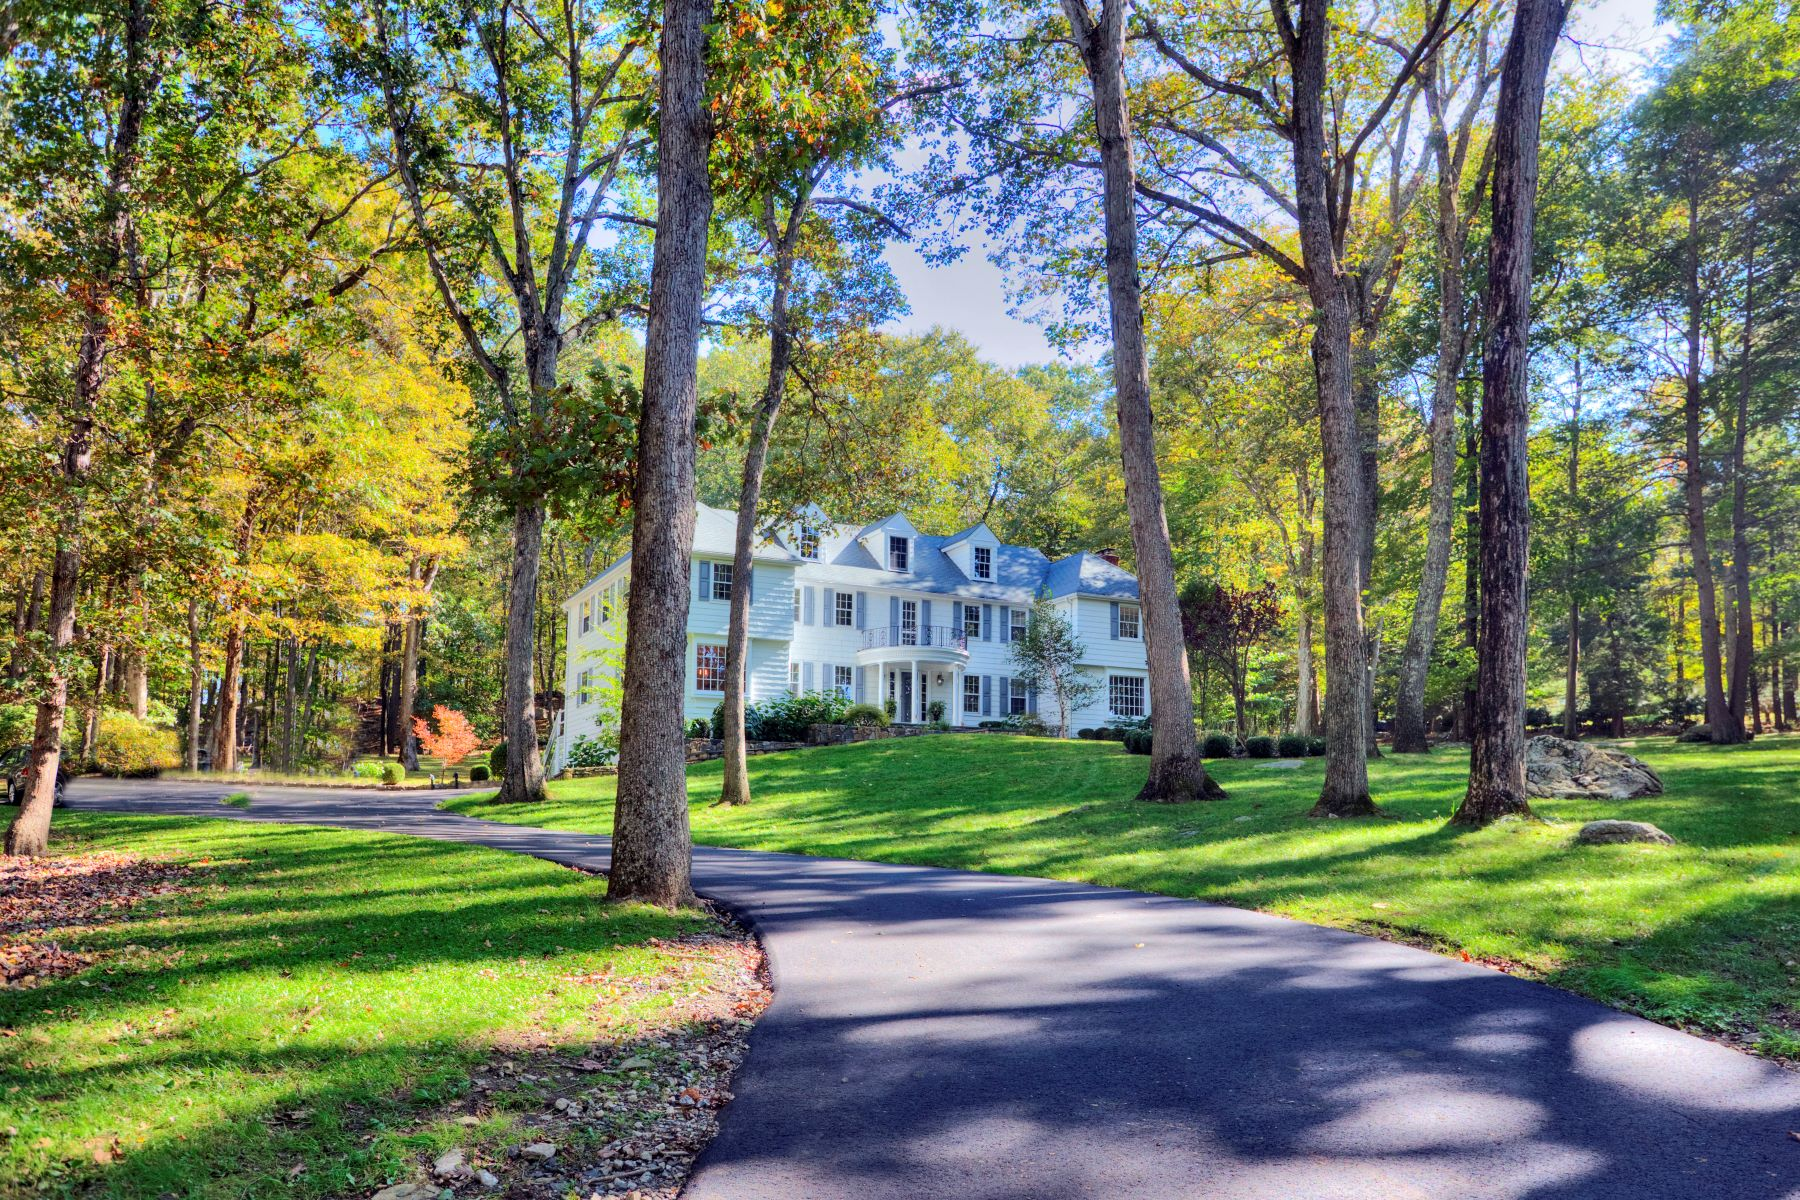 Single Family Homes for Sale at 2141 Ponus Ridge New Canaan, Connecticut 06840 United States